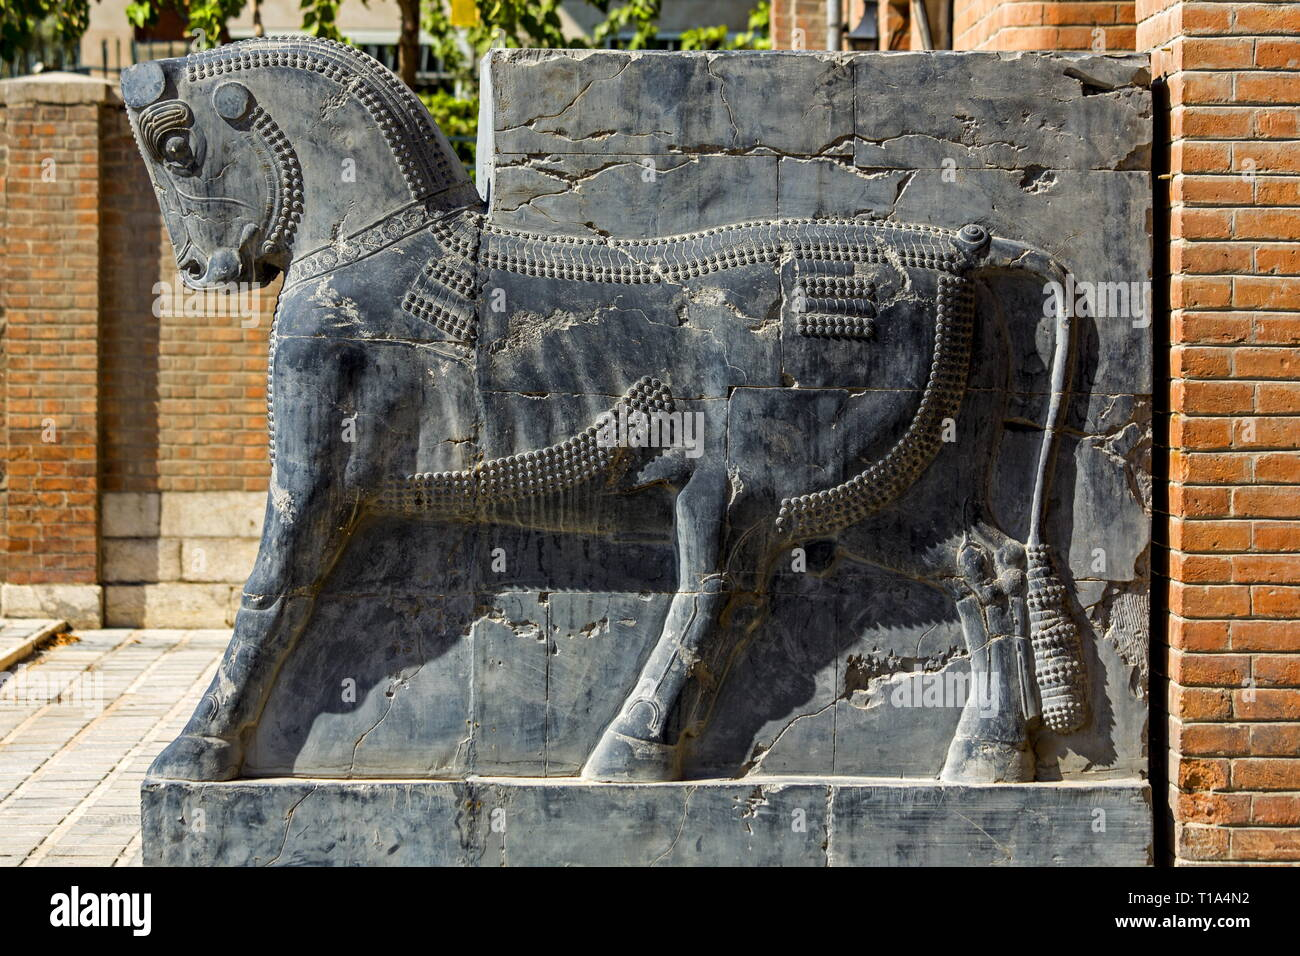 geography / travel, National Museum, Tehran, relief of a bull from the Achaemenid era, Additional-Rights-Clearance-Info-Not-Available - Stock Image